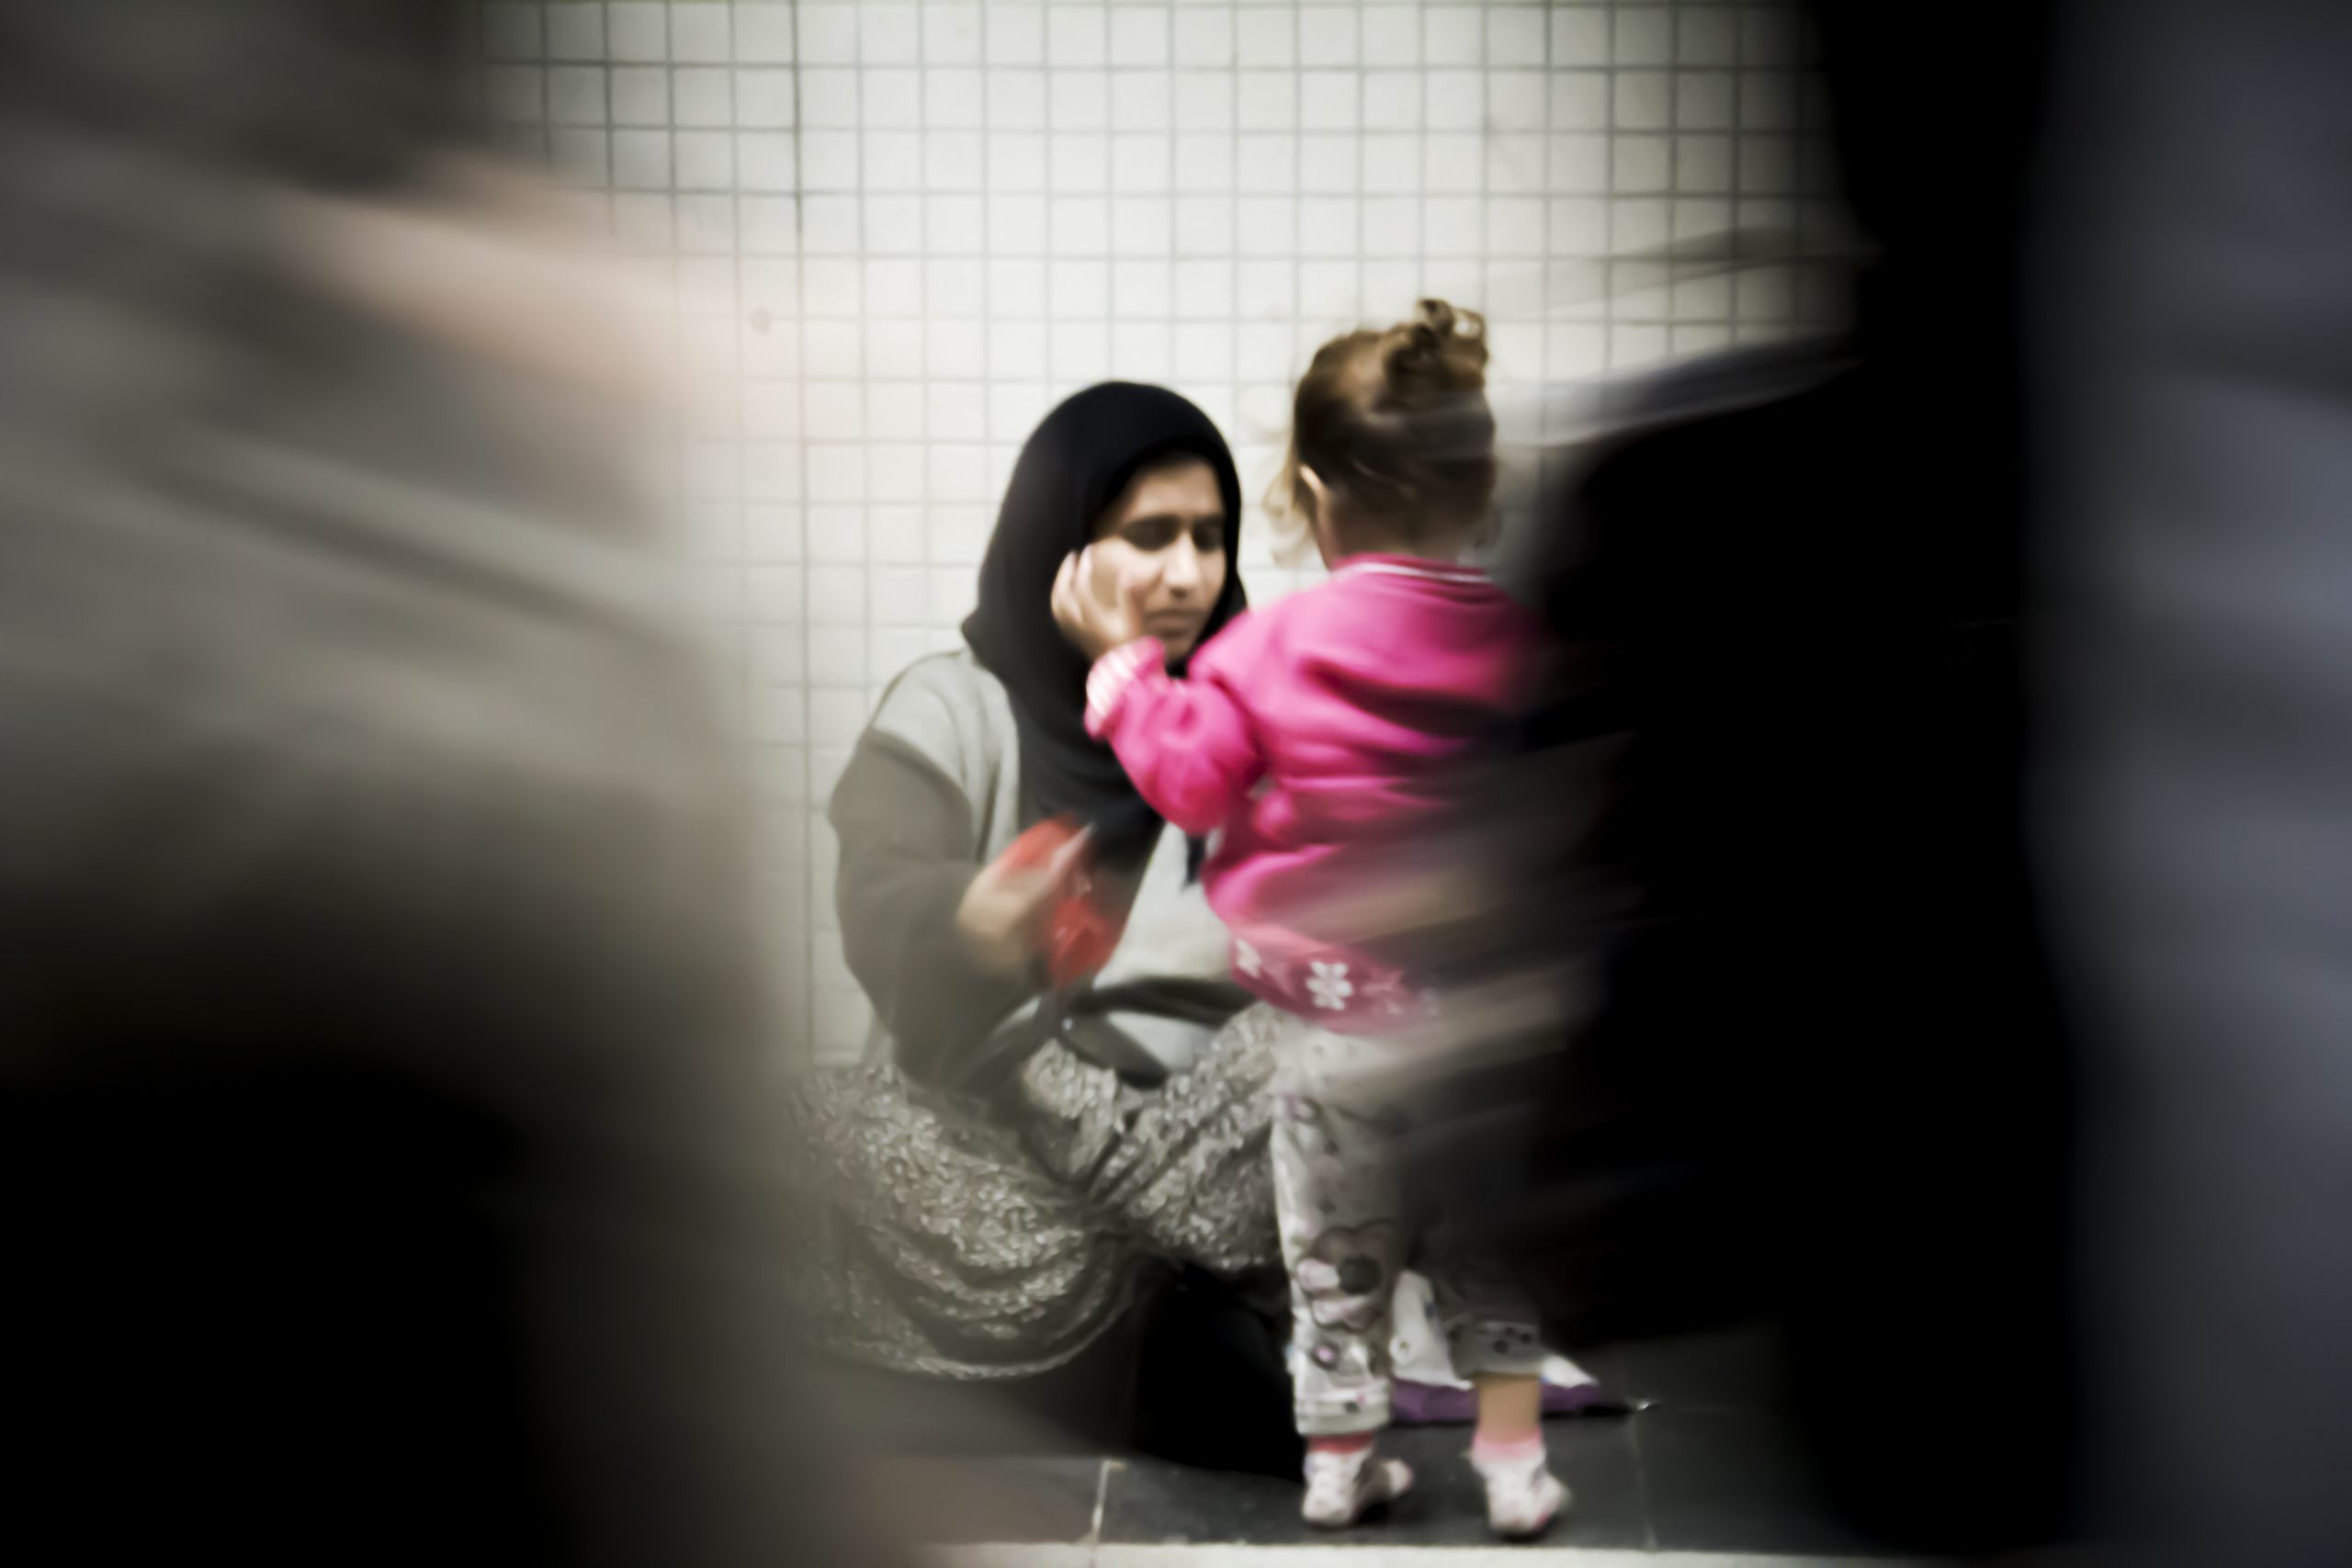 A refugee woman sitting on the floor with her daughter